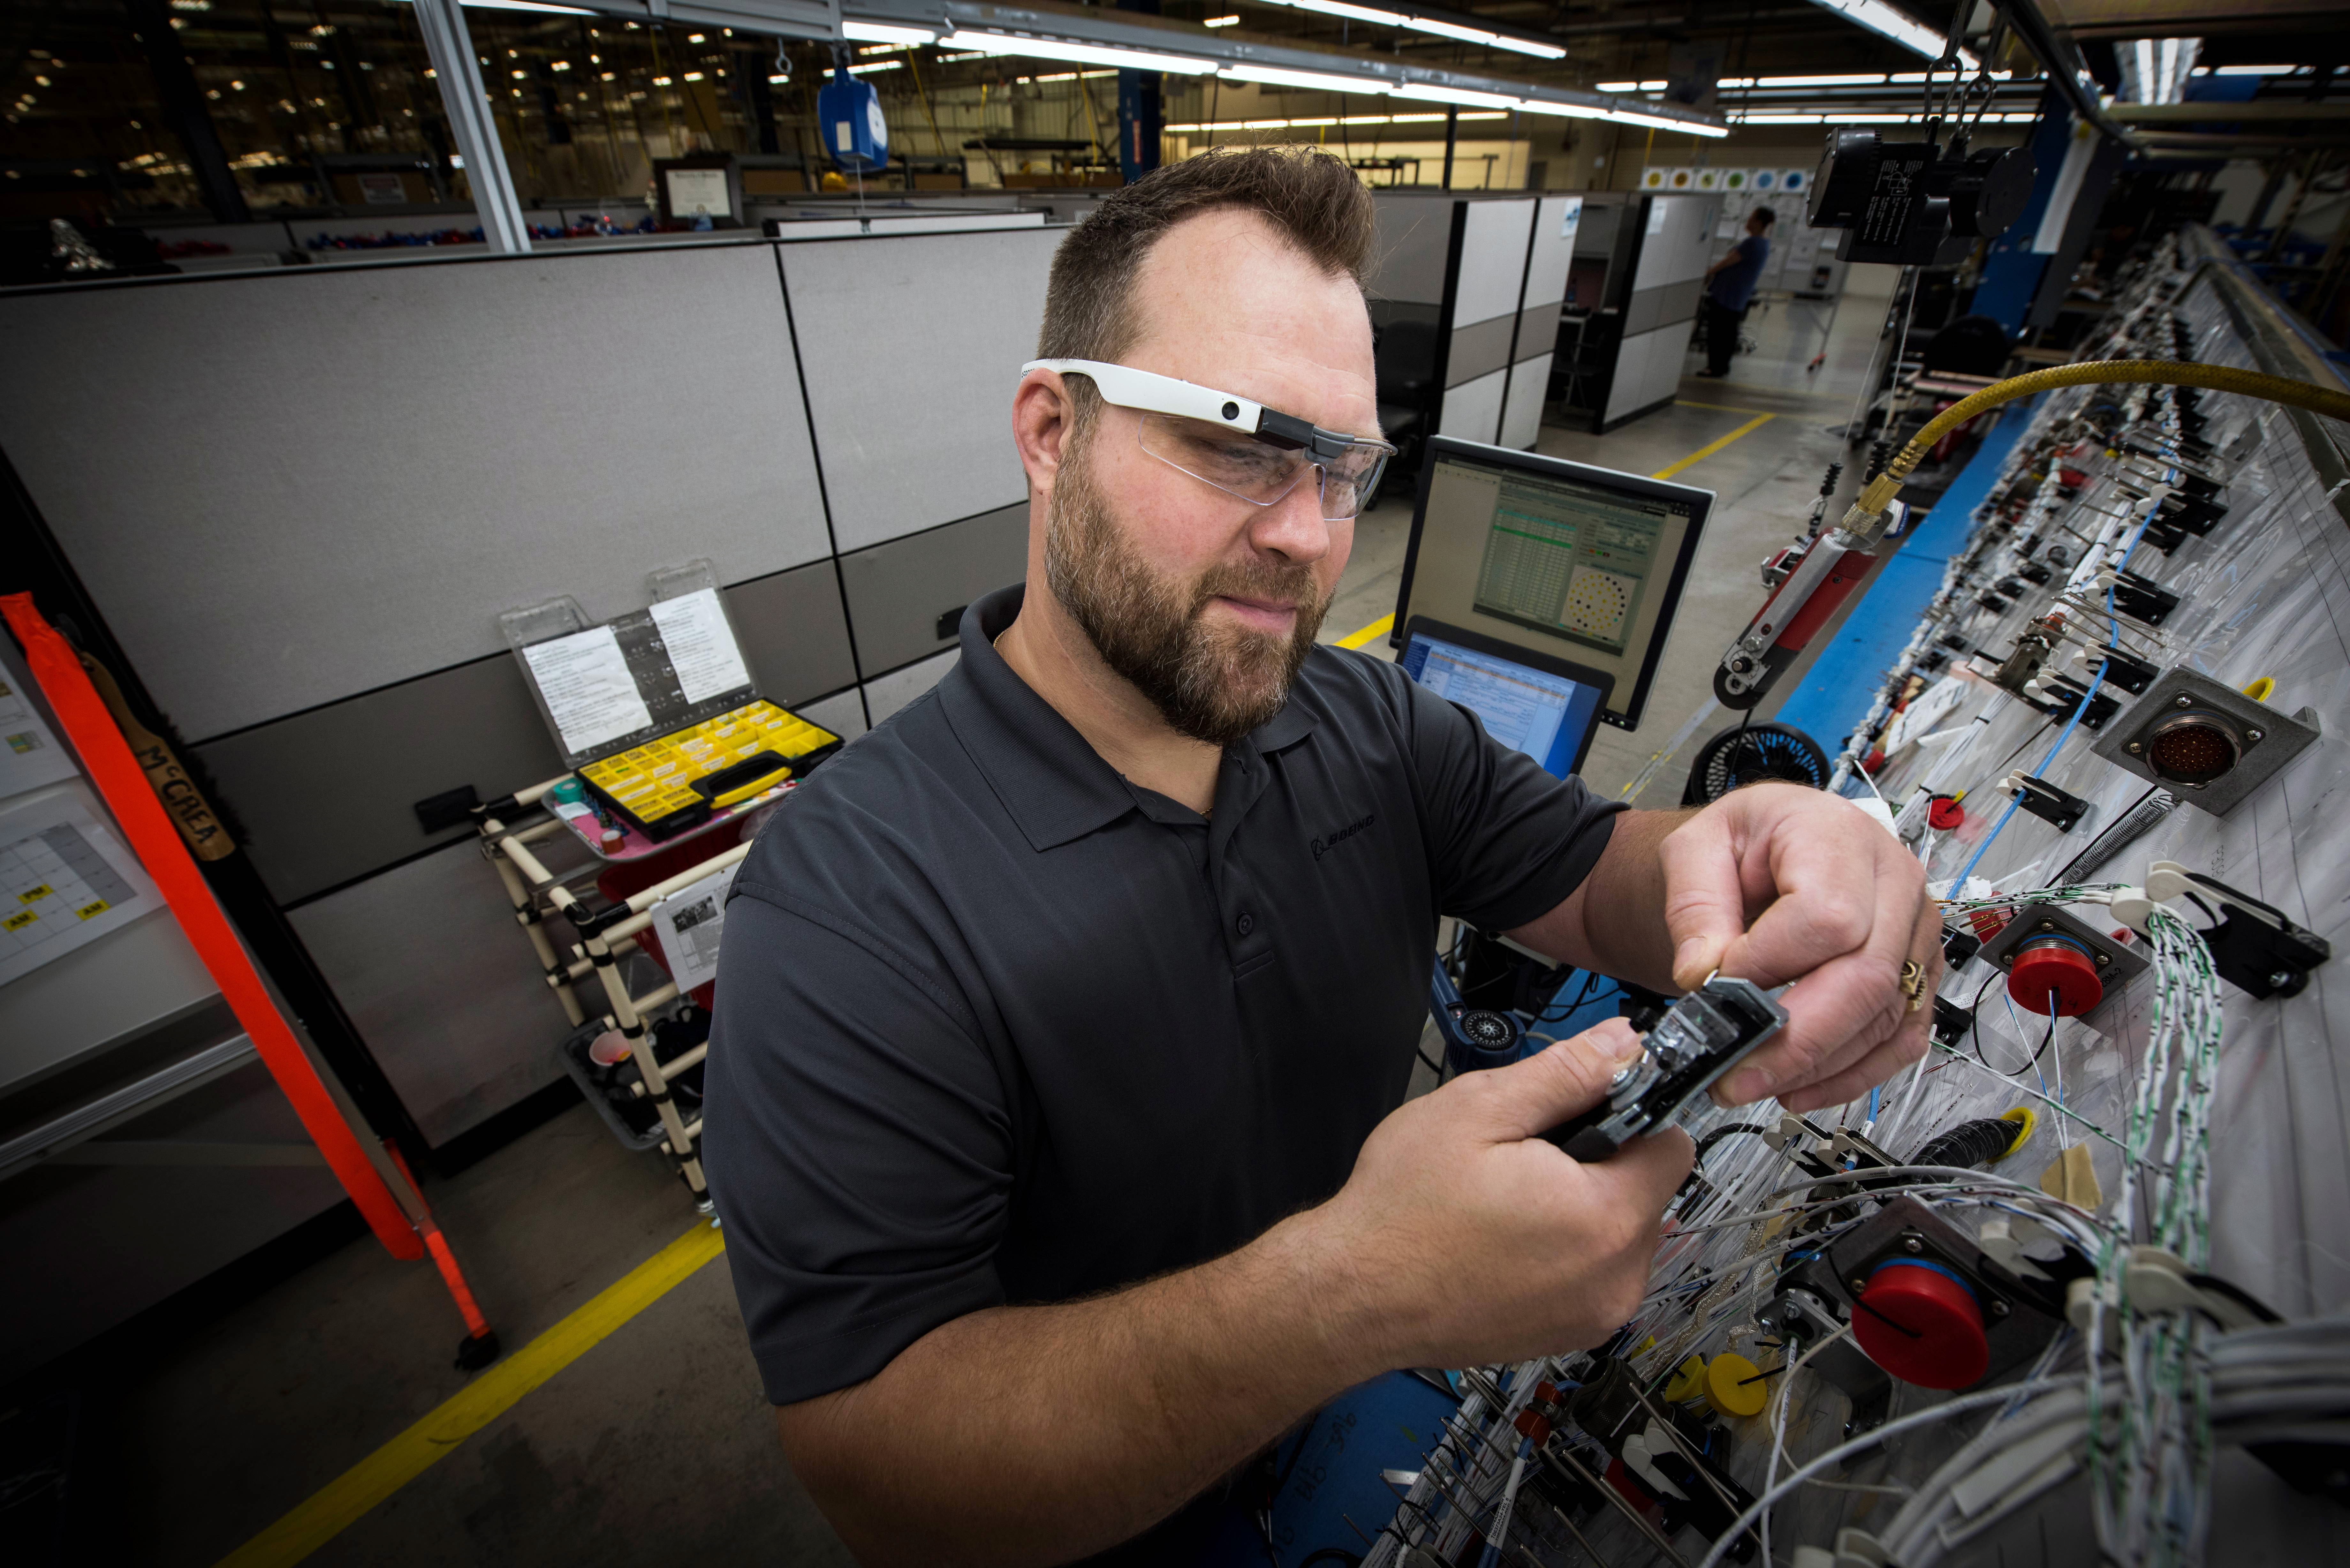 boeing wiring harness mcc partners with boeing to train future workforce alumni  boeing to train future workforce